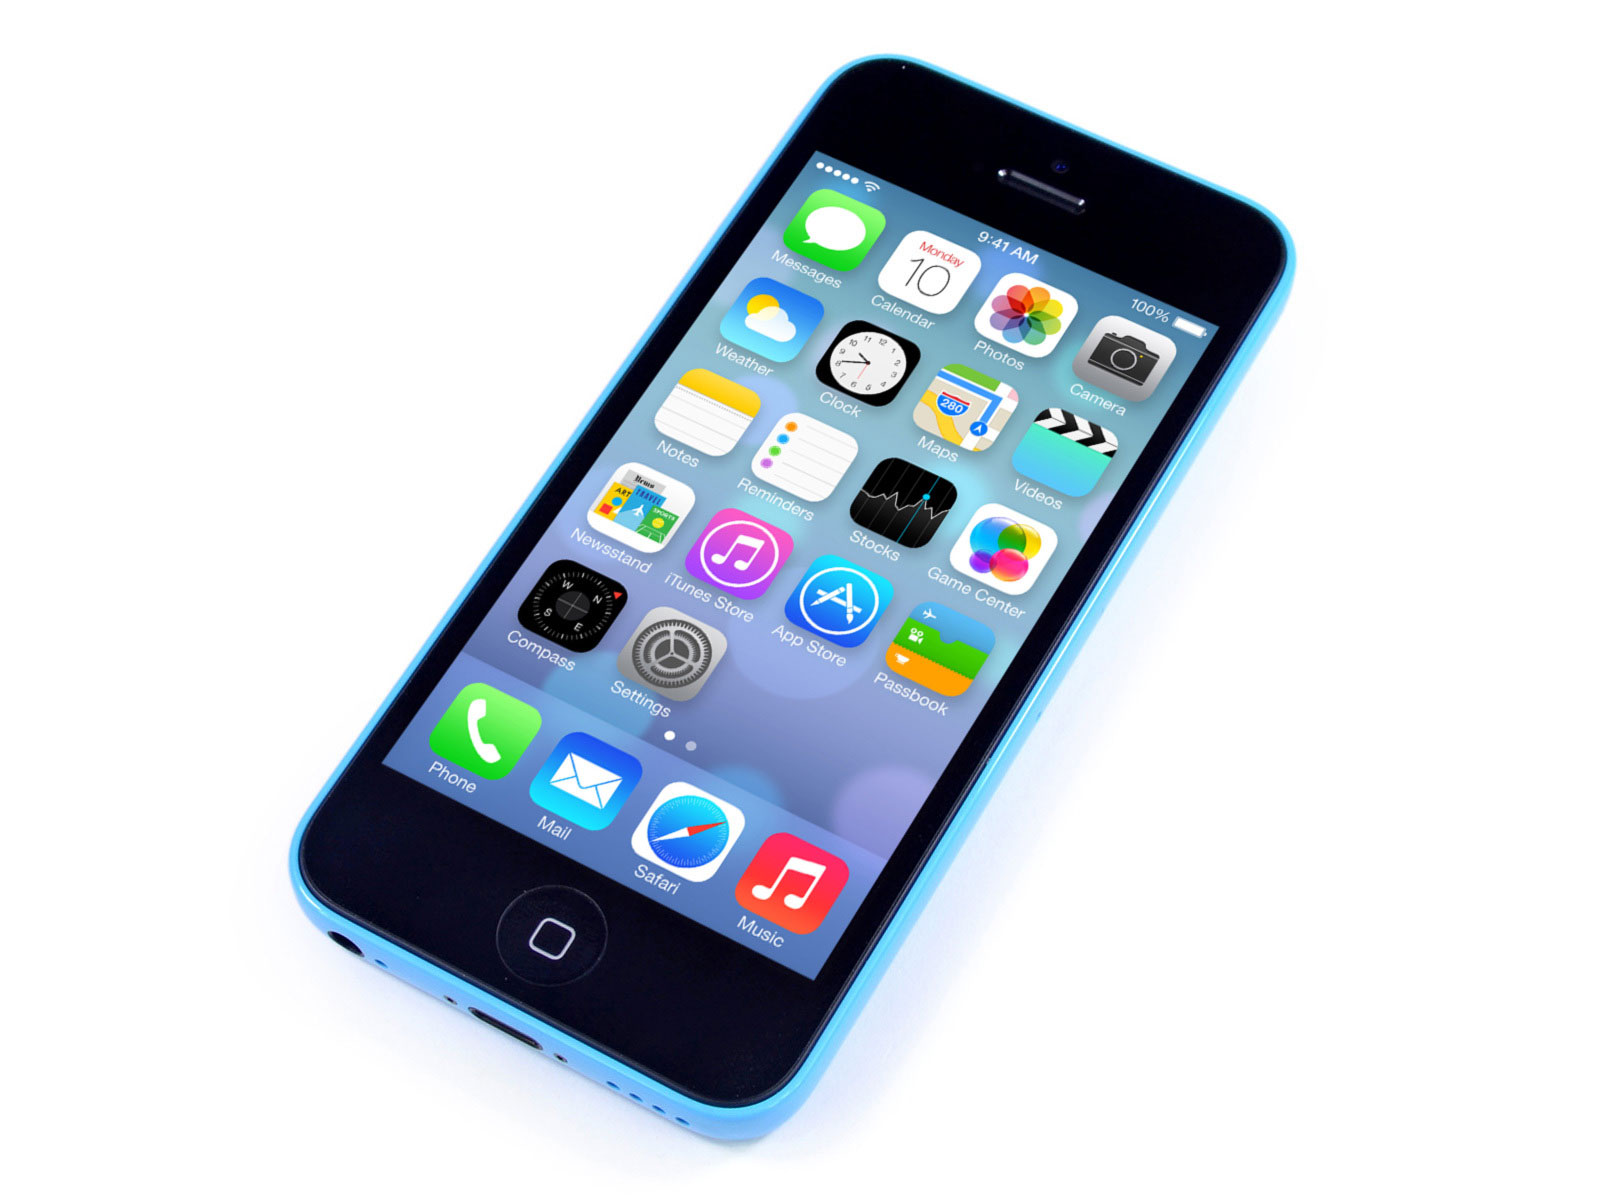 iphone 5c apple apple iphone 5c 16gb quot factory unlocked quot 4g lte smartphone 11075